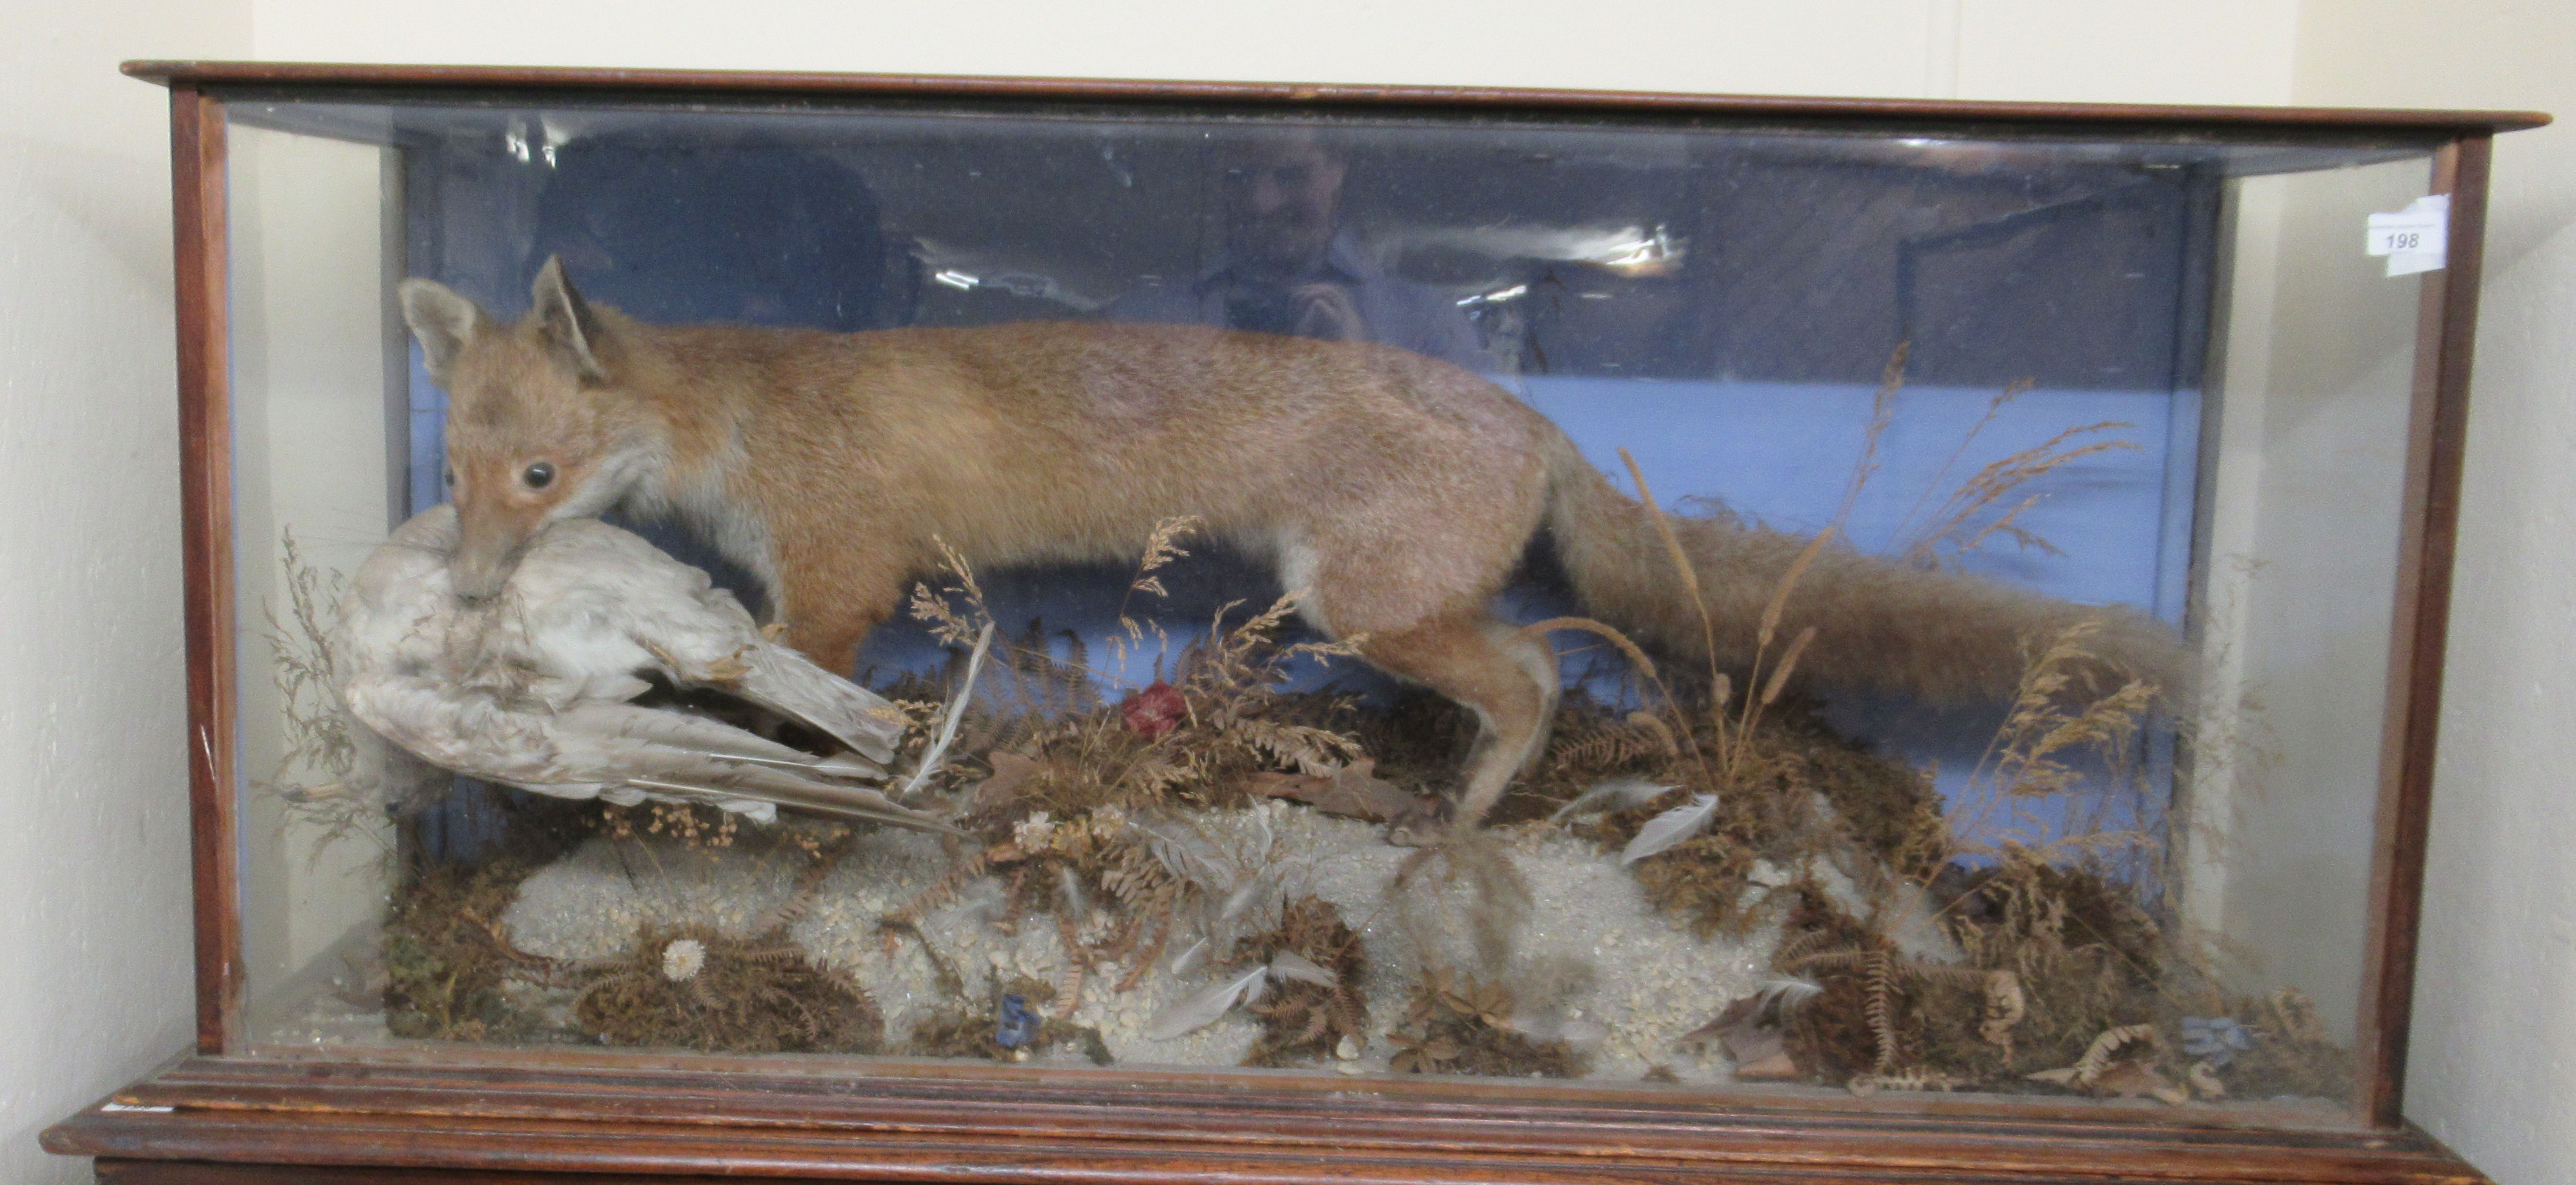 Taxidermy - a late 19th/early 20thC fox with captured prey, displayed in a naturalistic setting